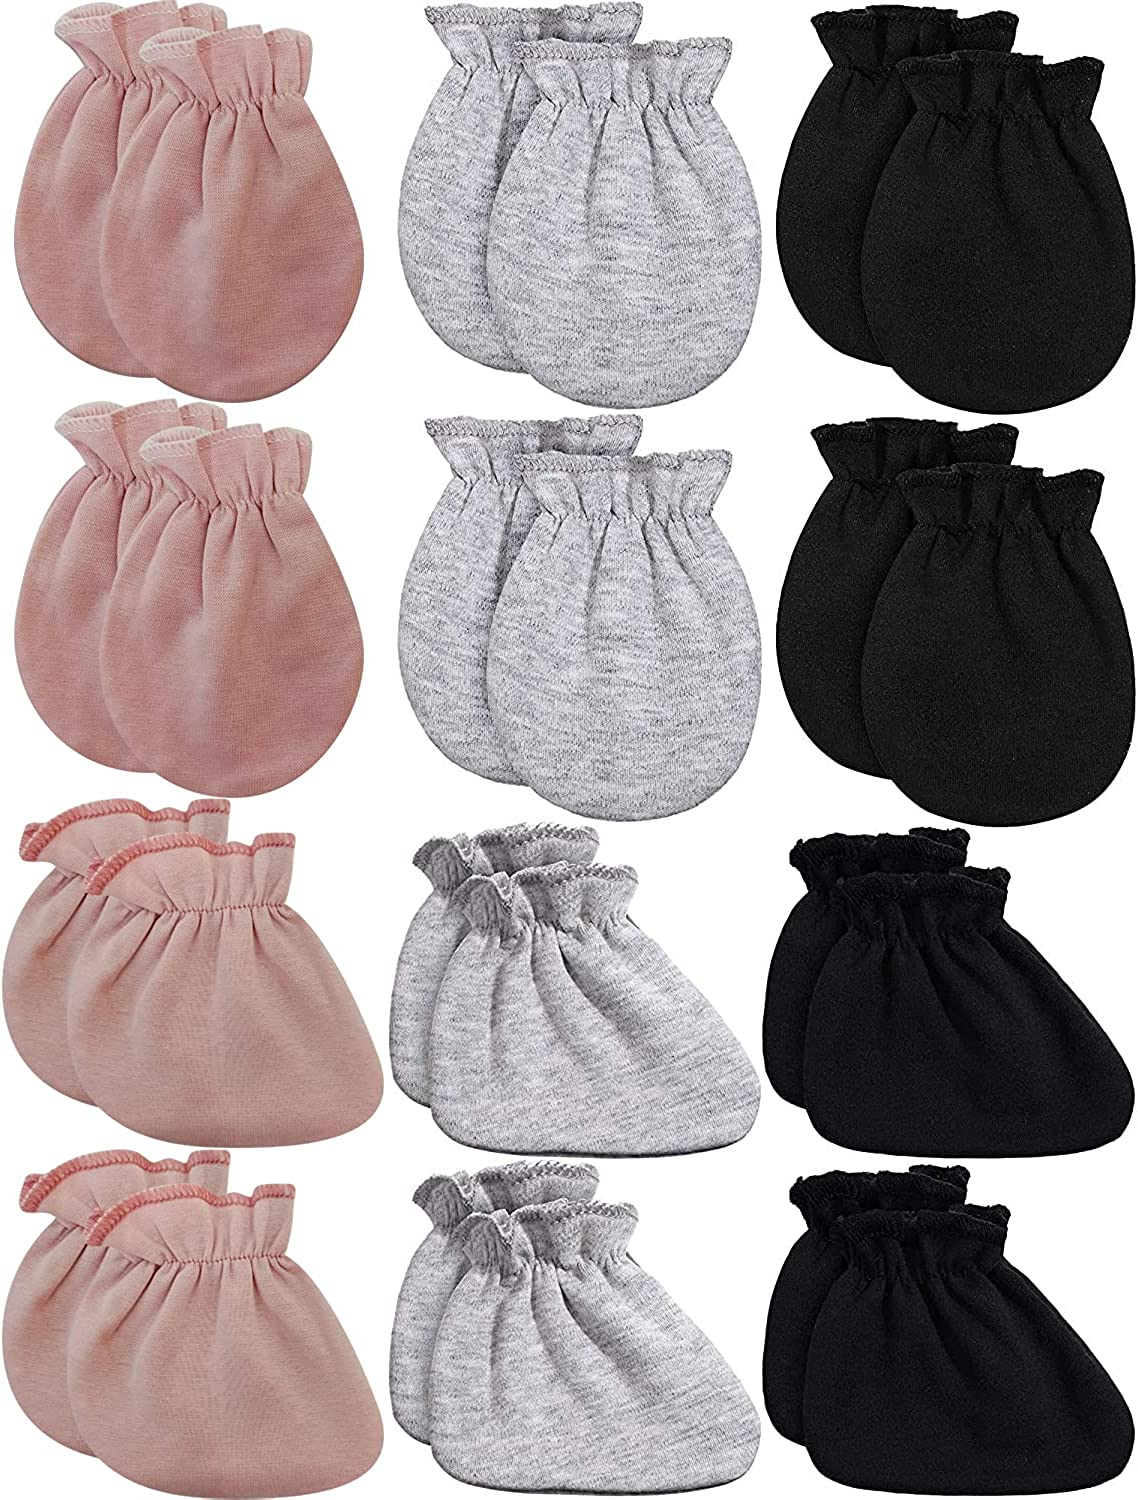 Newborn Infant baby Ankle Socks Mittens Set Cotton Cute Cozy Crew Sock Gloves for Baby Boy Girls 0-12 Months